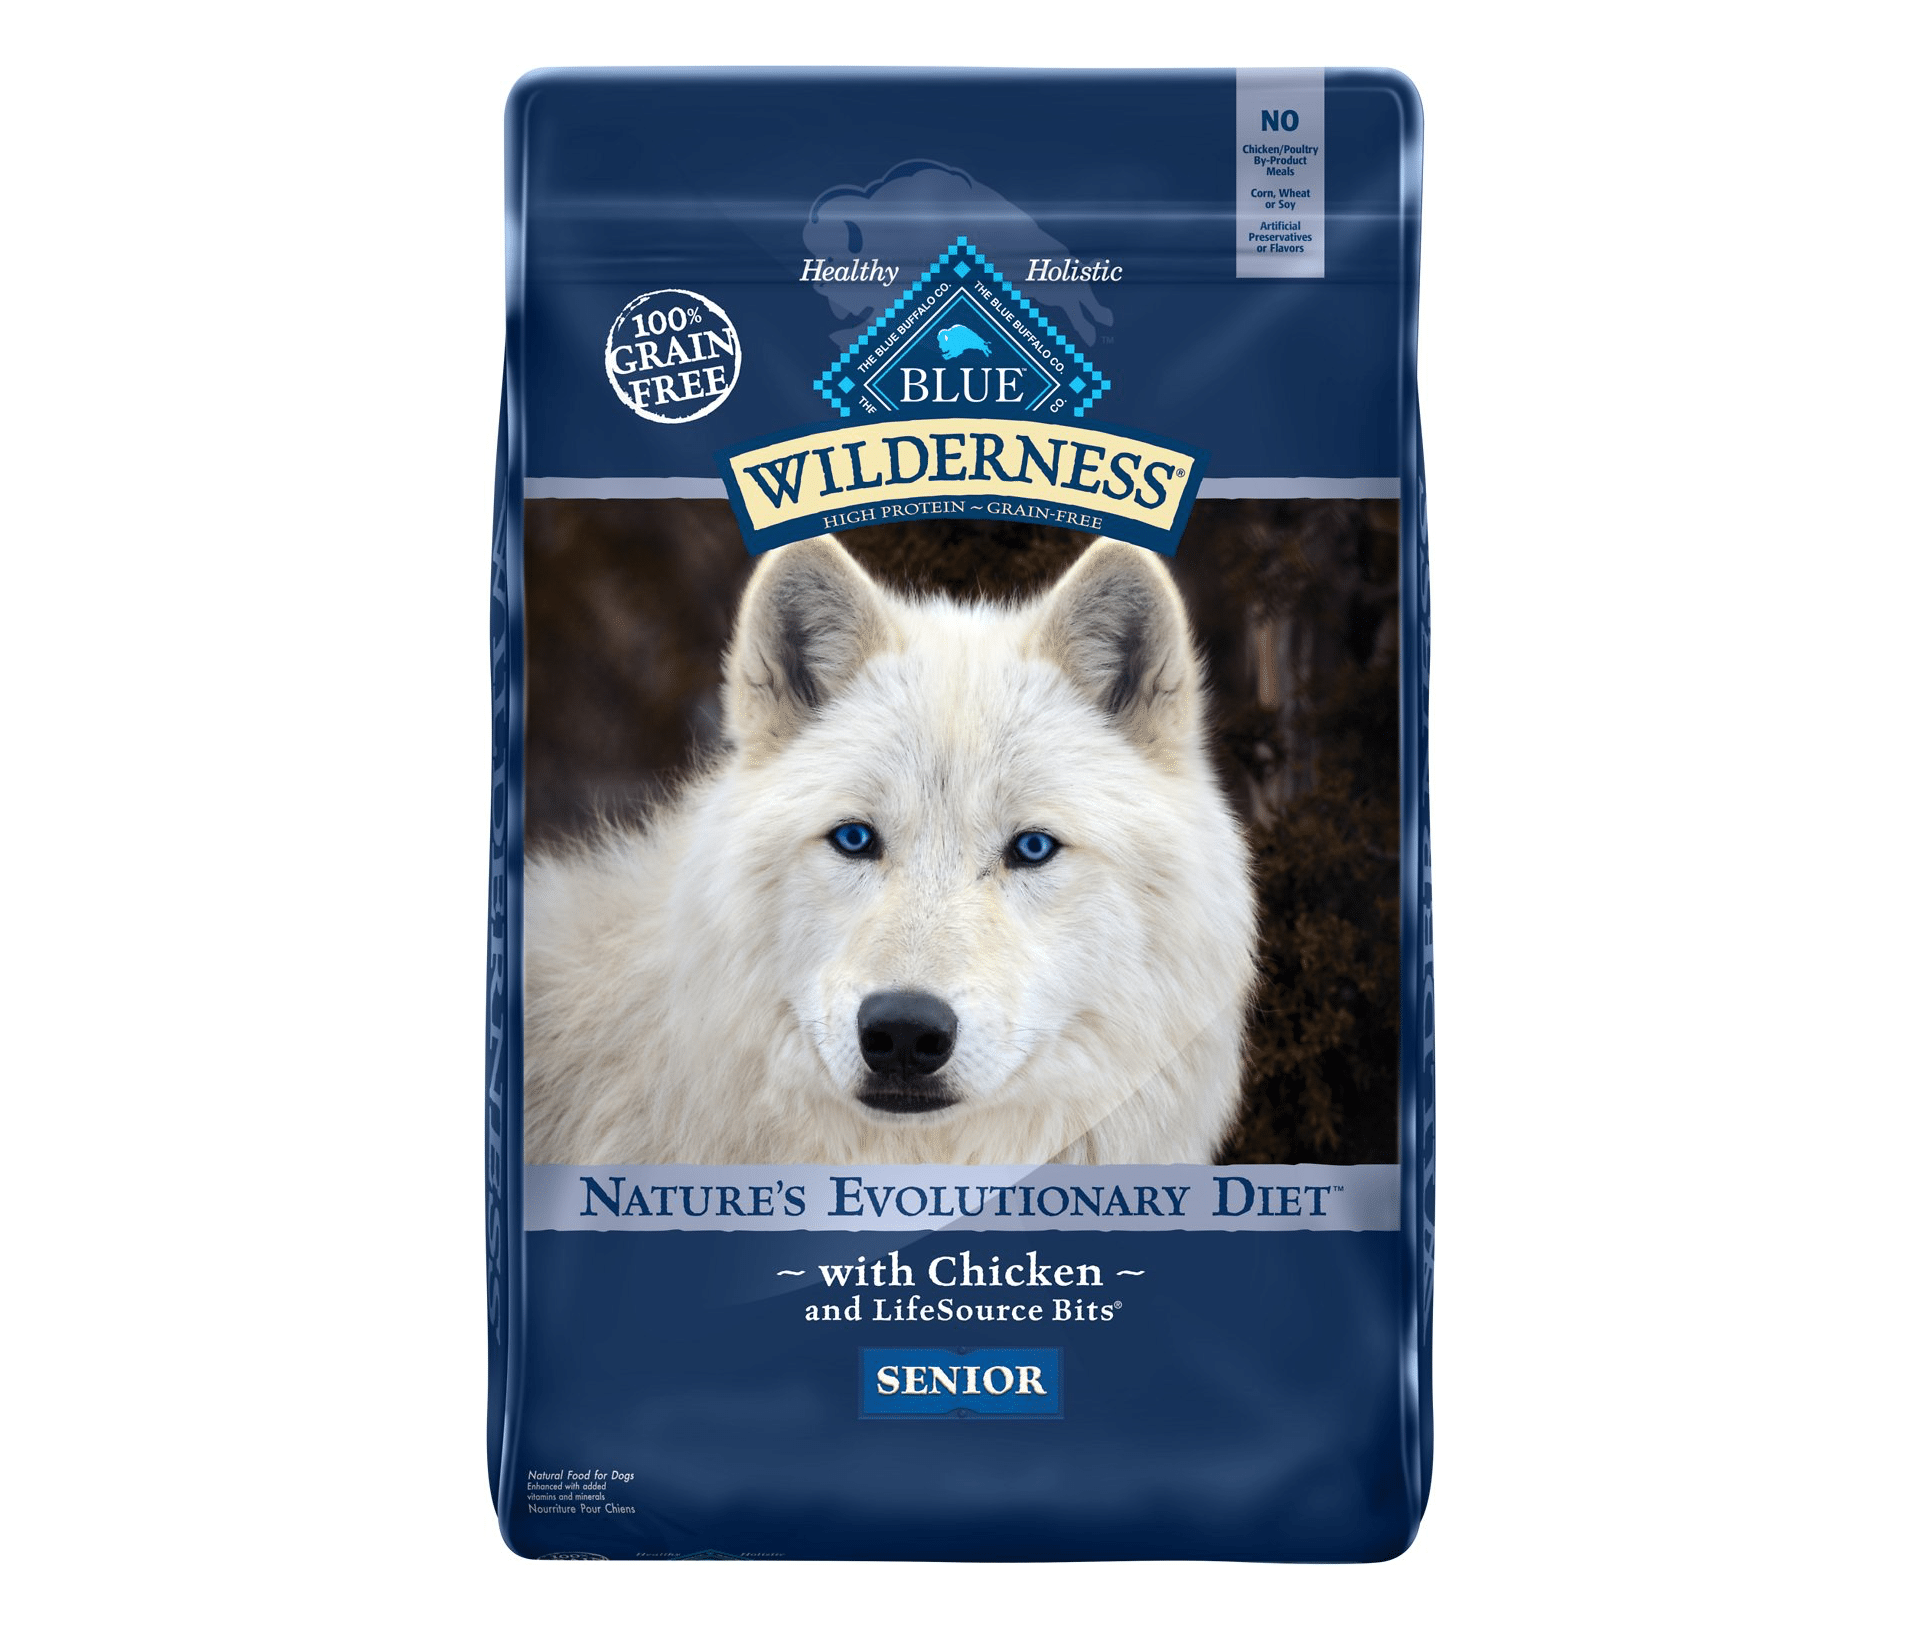 Blue Buffalo Wilderness Senior Chicken Recipe Grain-Free Dry Dog Food